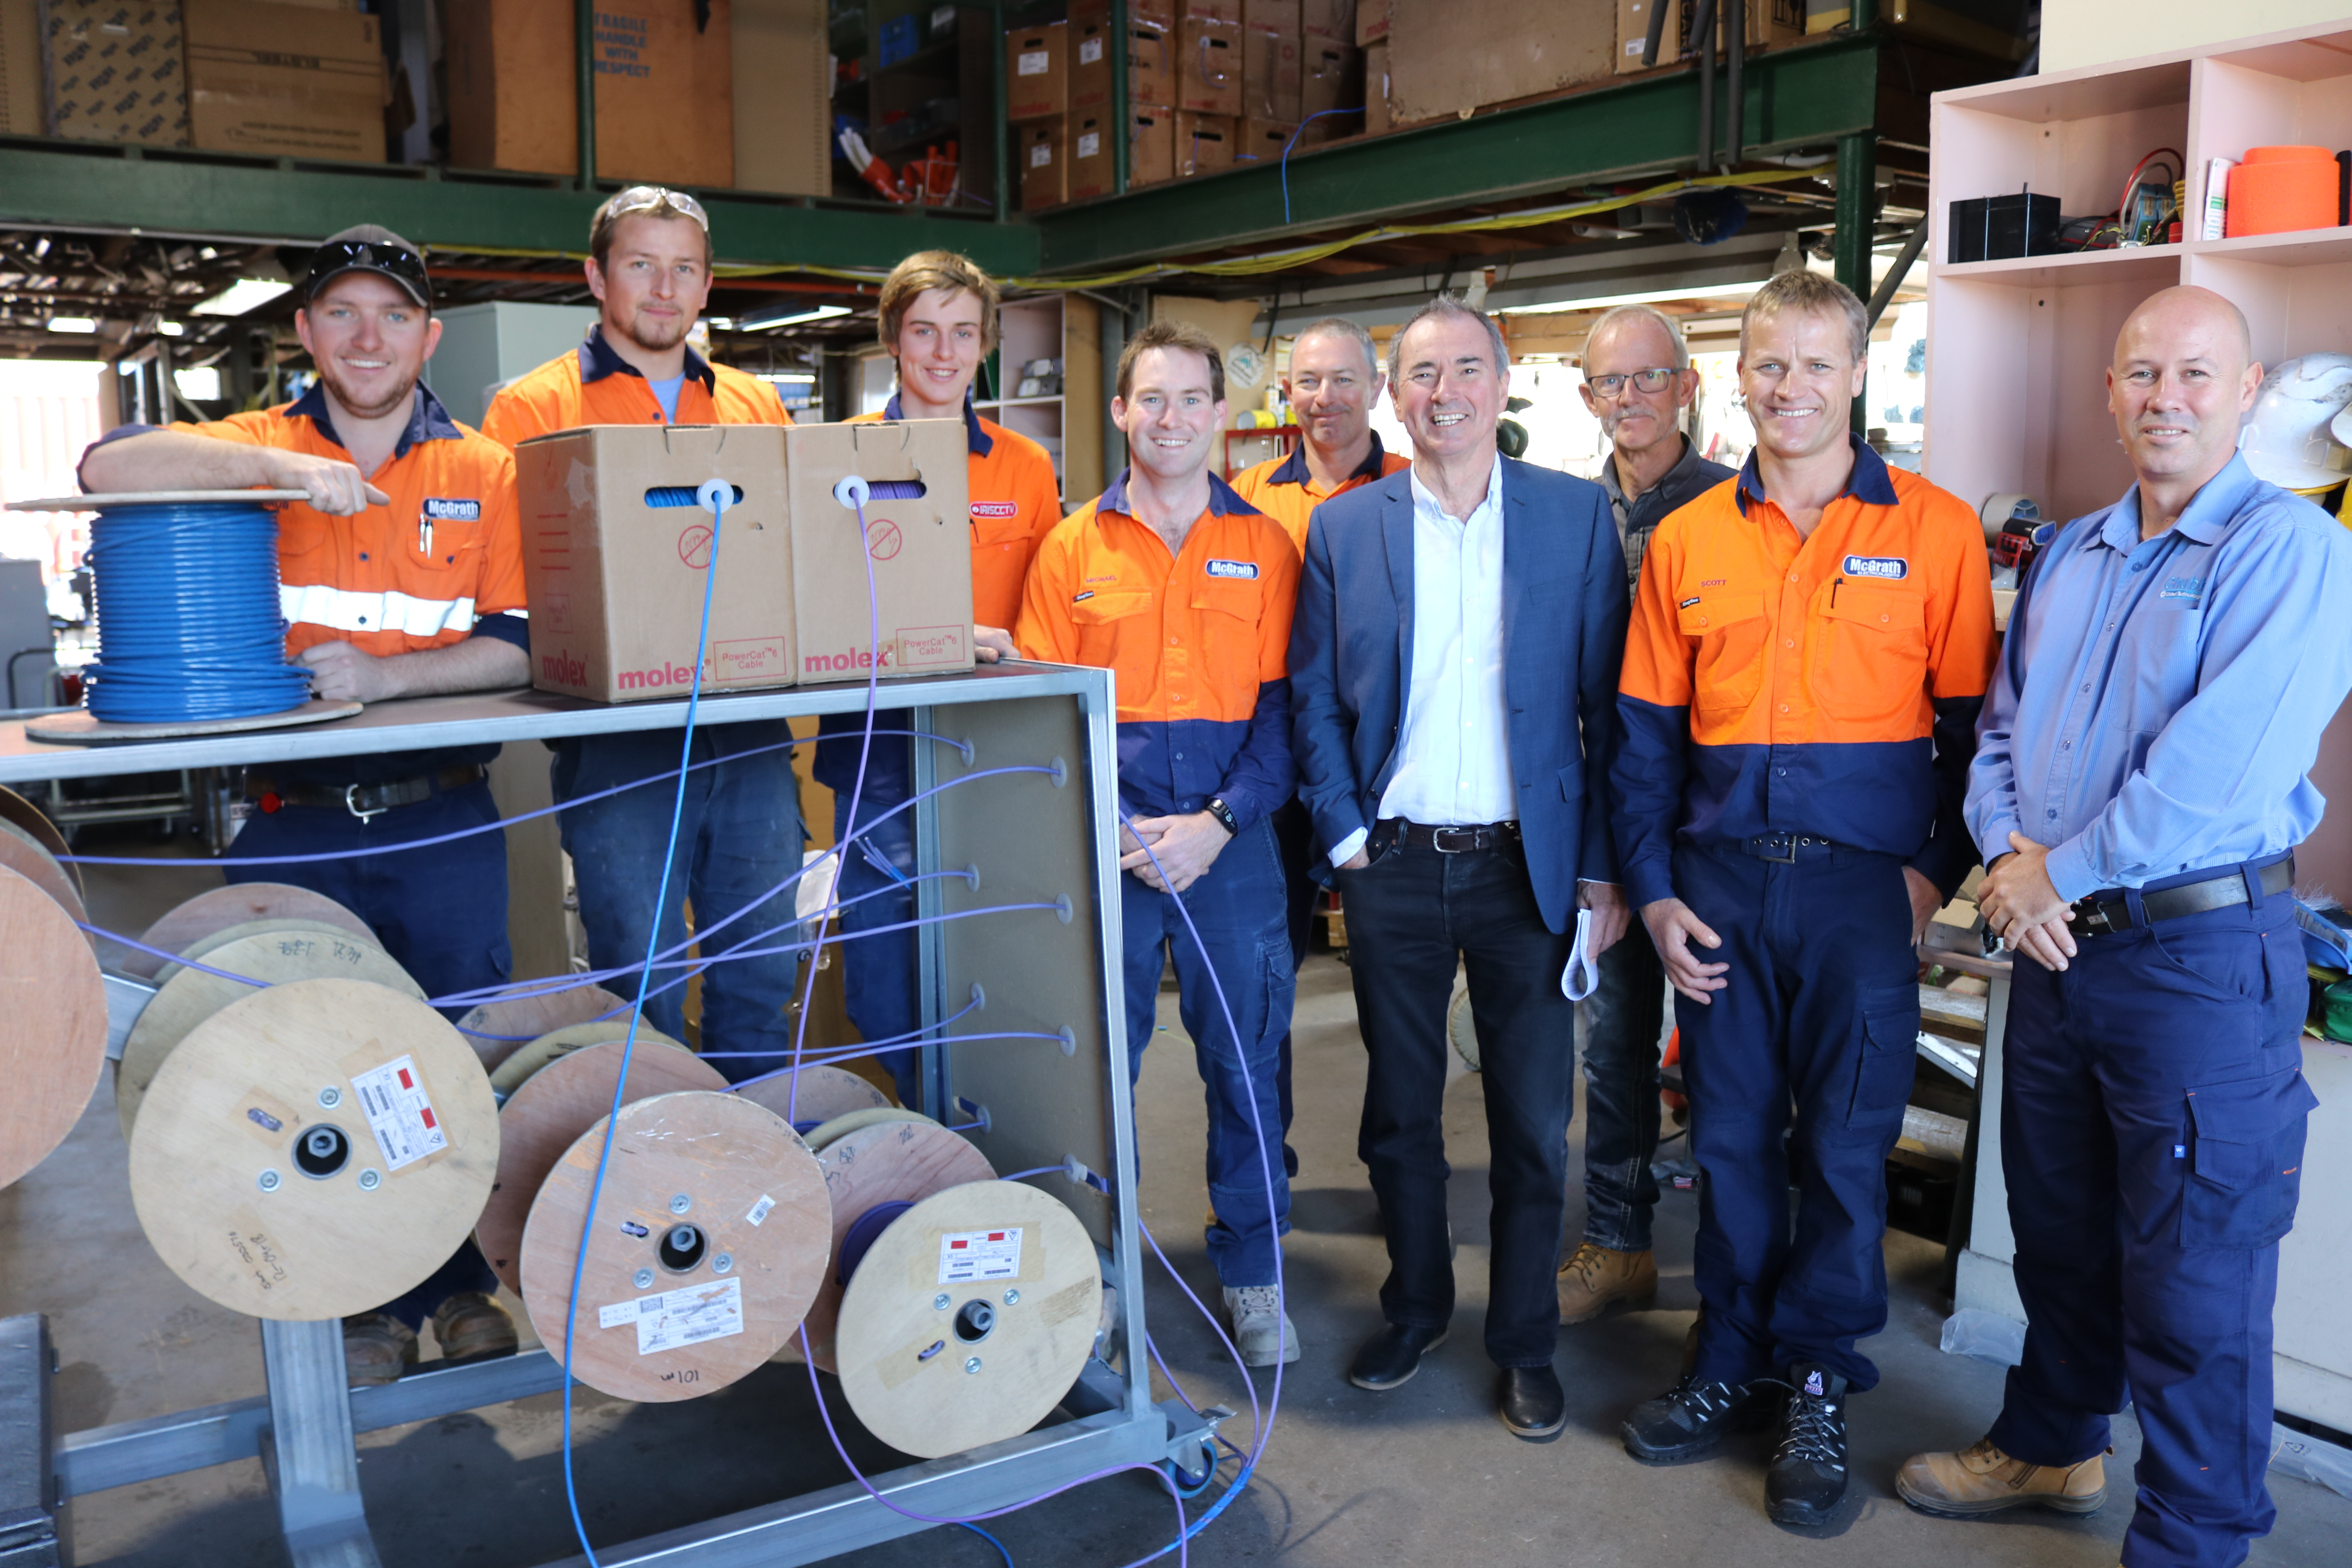 PHOTO: Mr Gulaptis is pictured with McGrath Electrical & Data employees and representatives from Saab Australia and Chubb Fire & Security